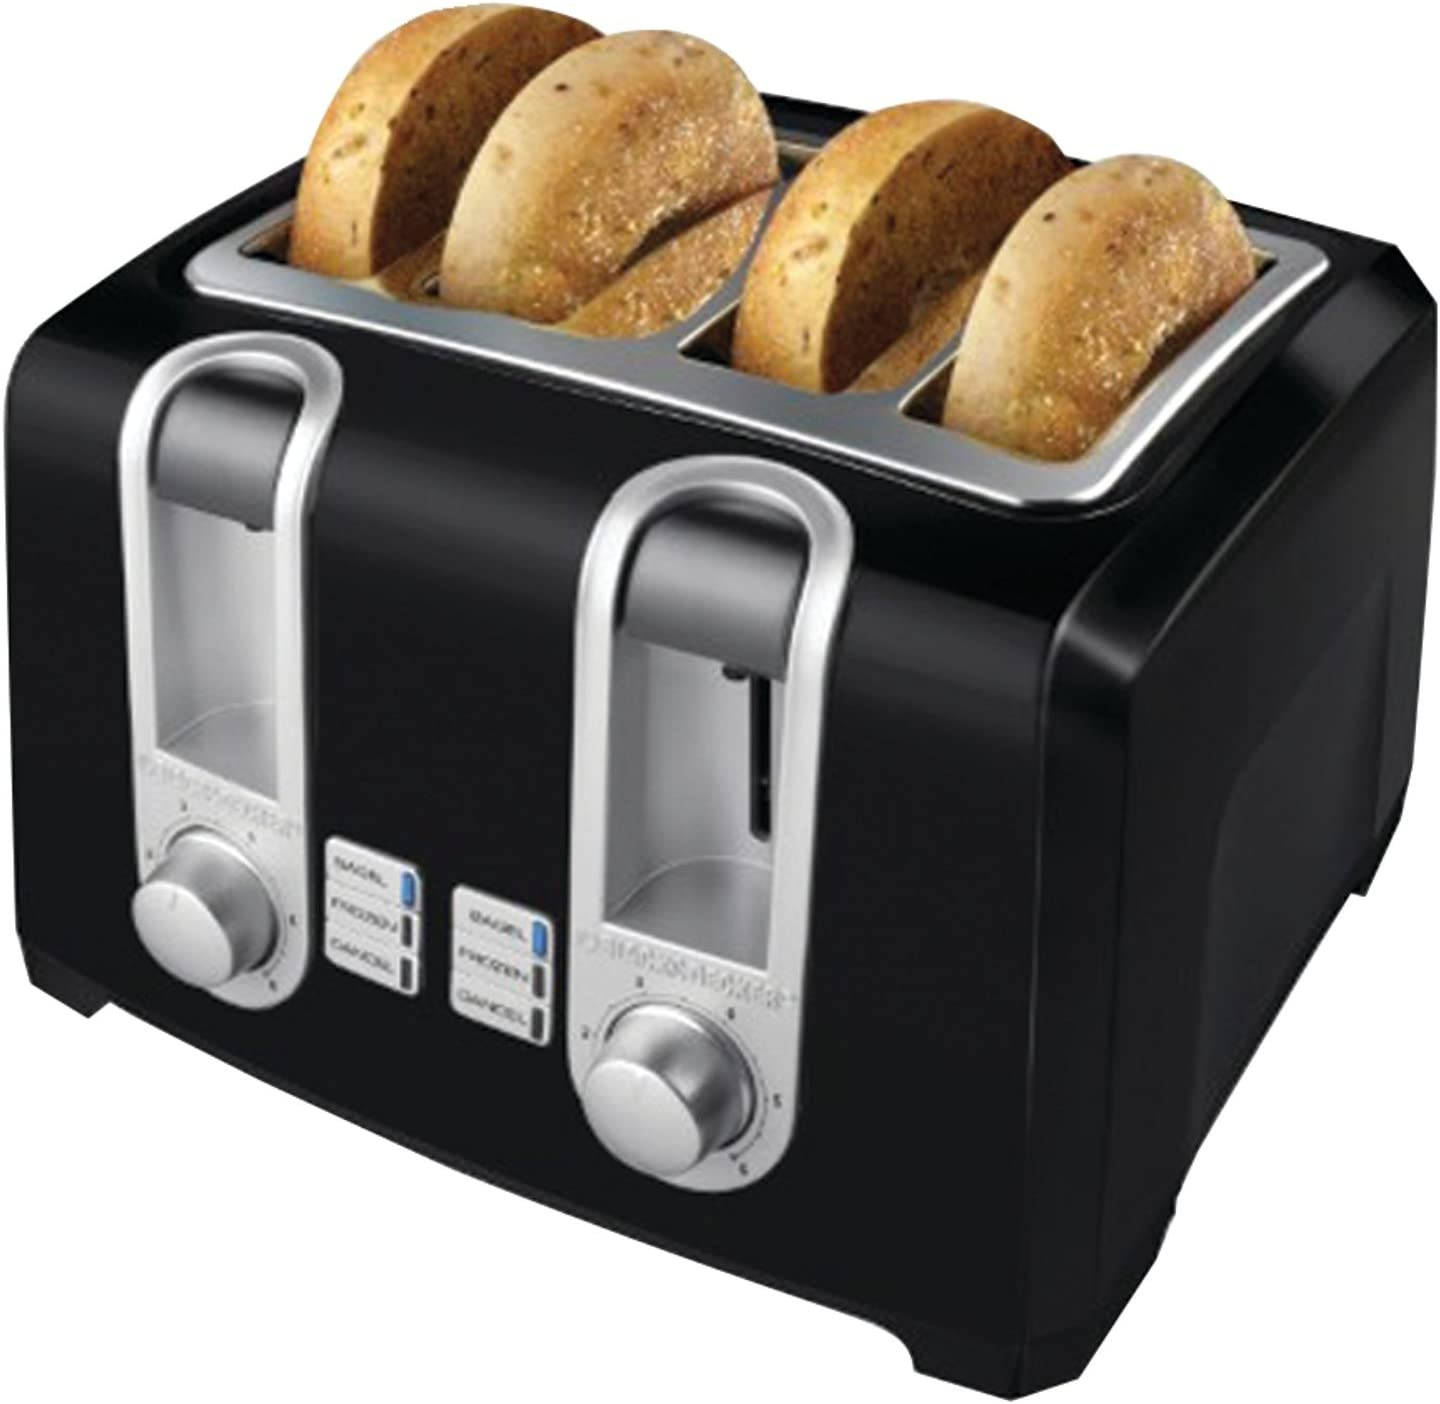 Amazon.com: Black & Decker t4569b 4 Slice Toaster, color ...